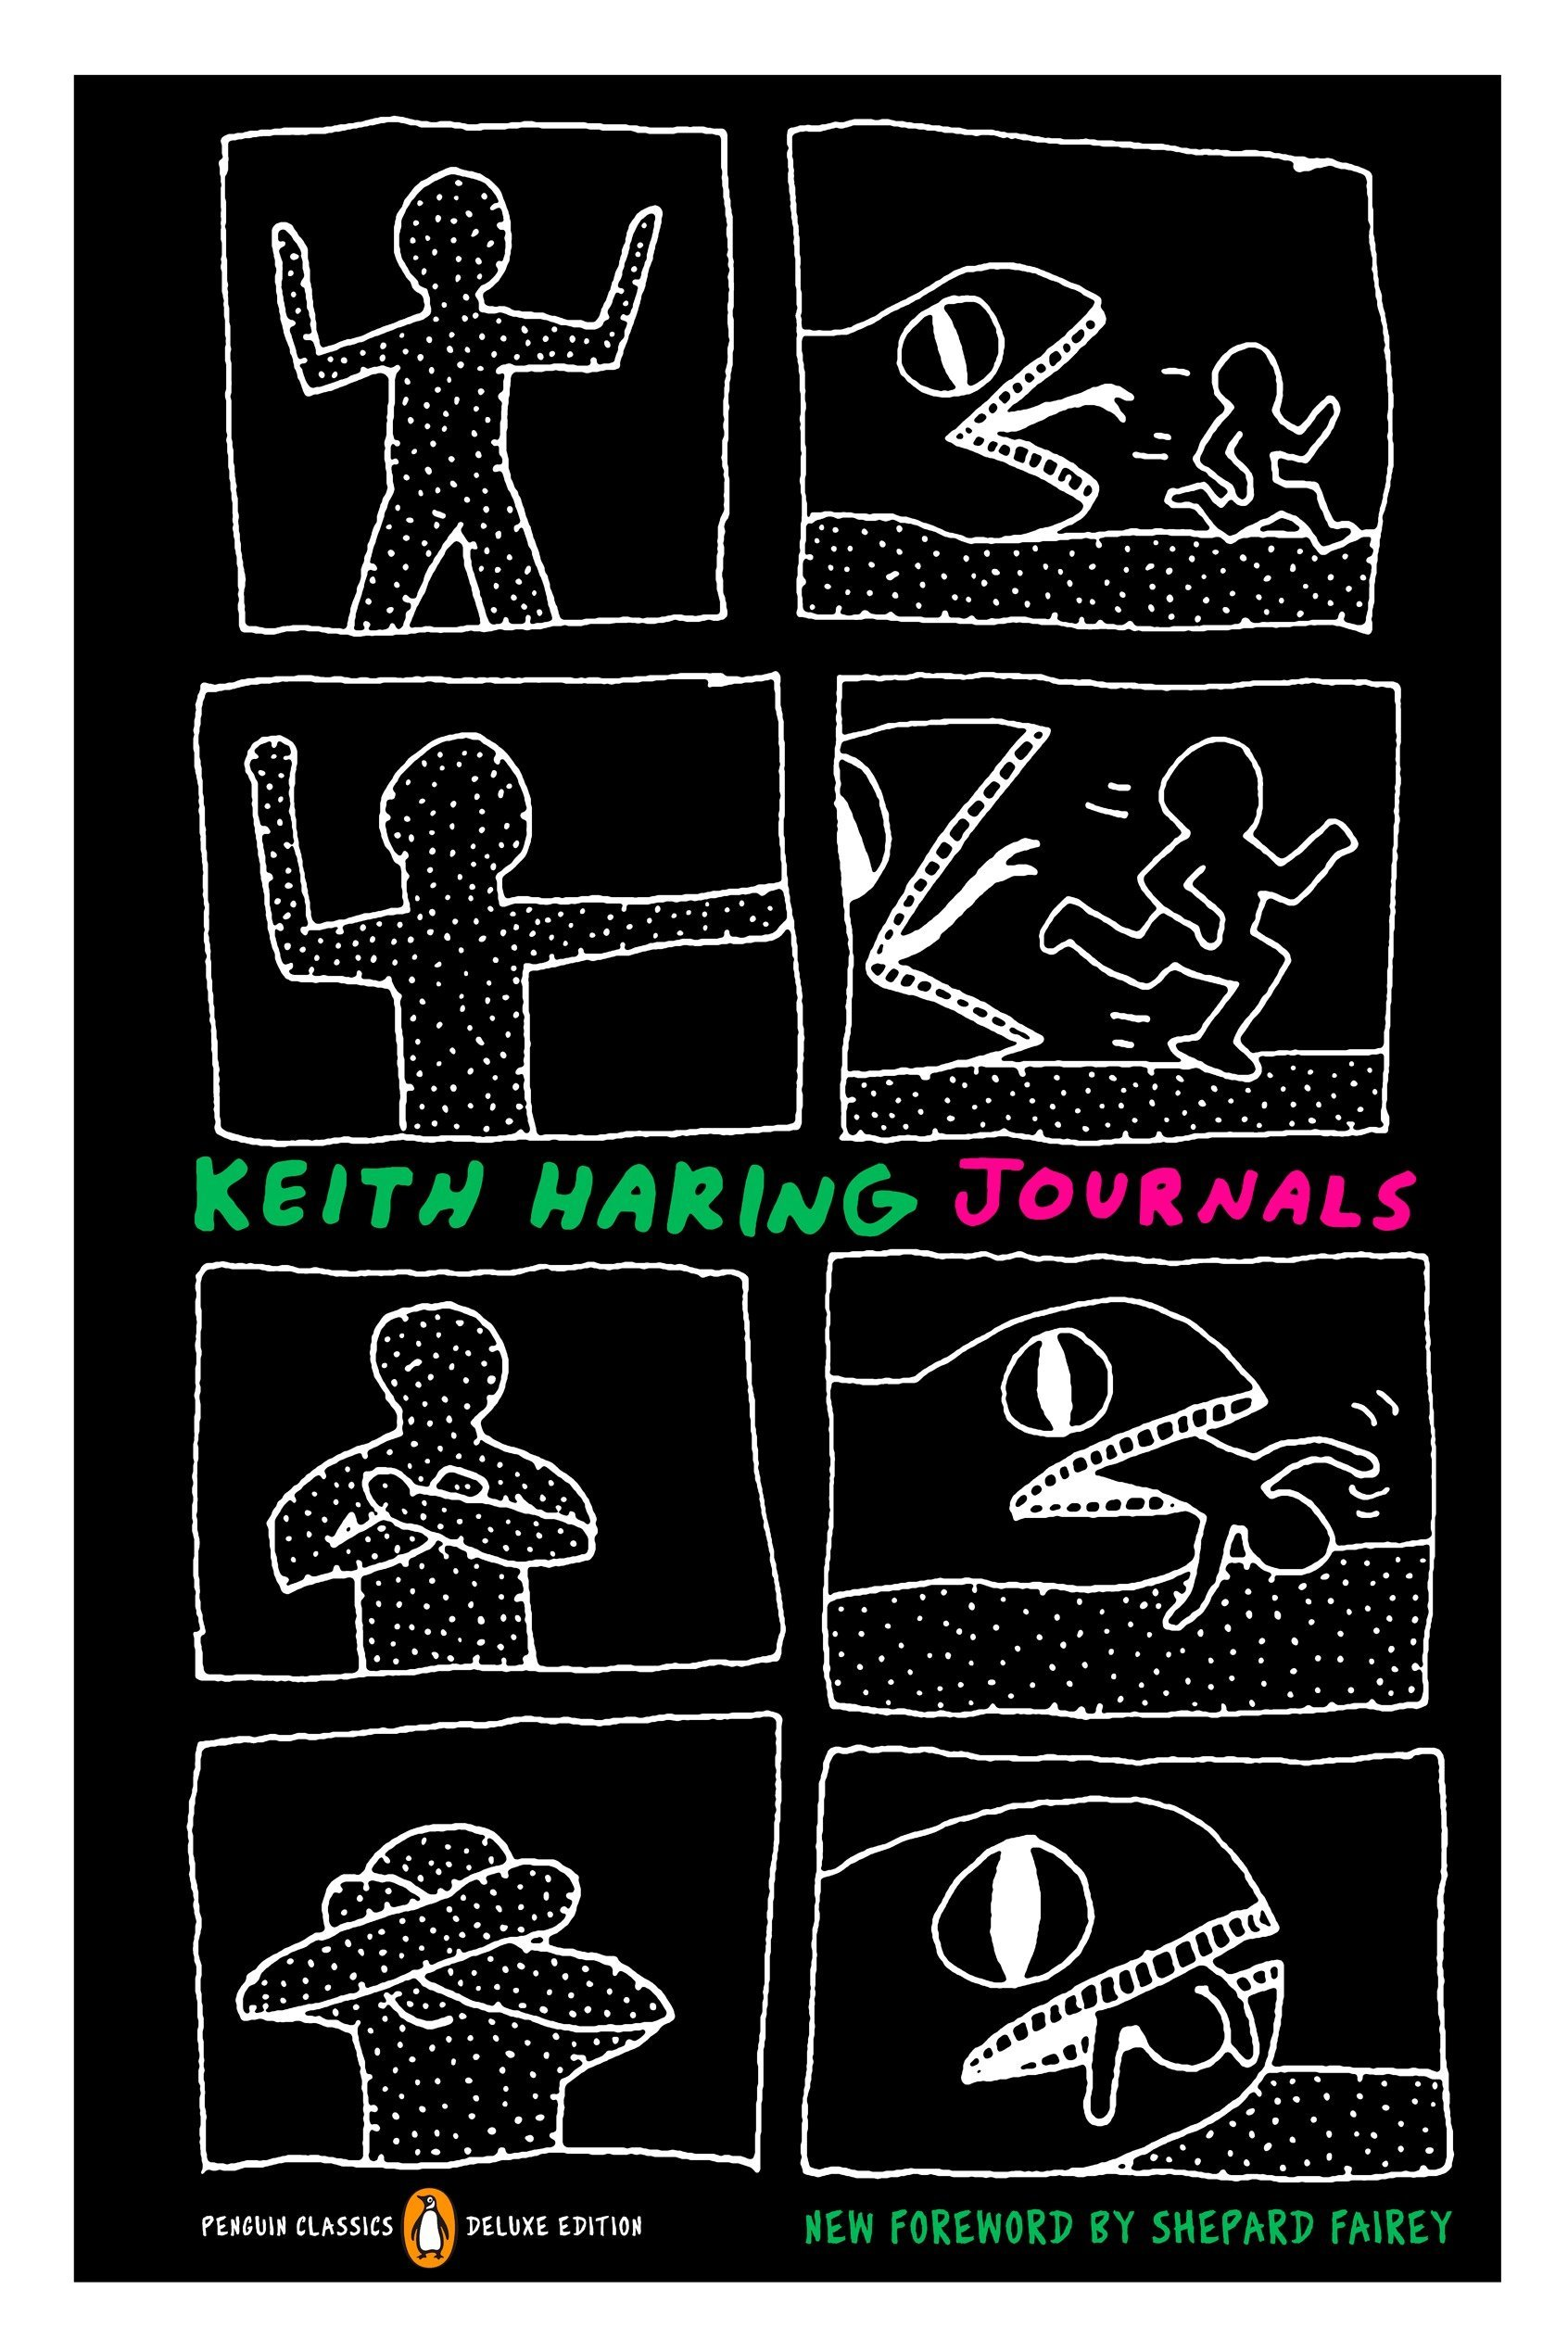 keith haring journals penguin classics deluxe edition